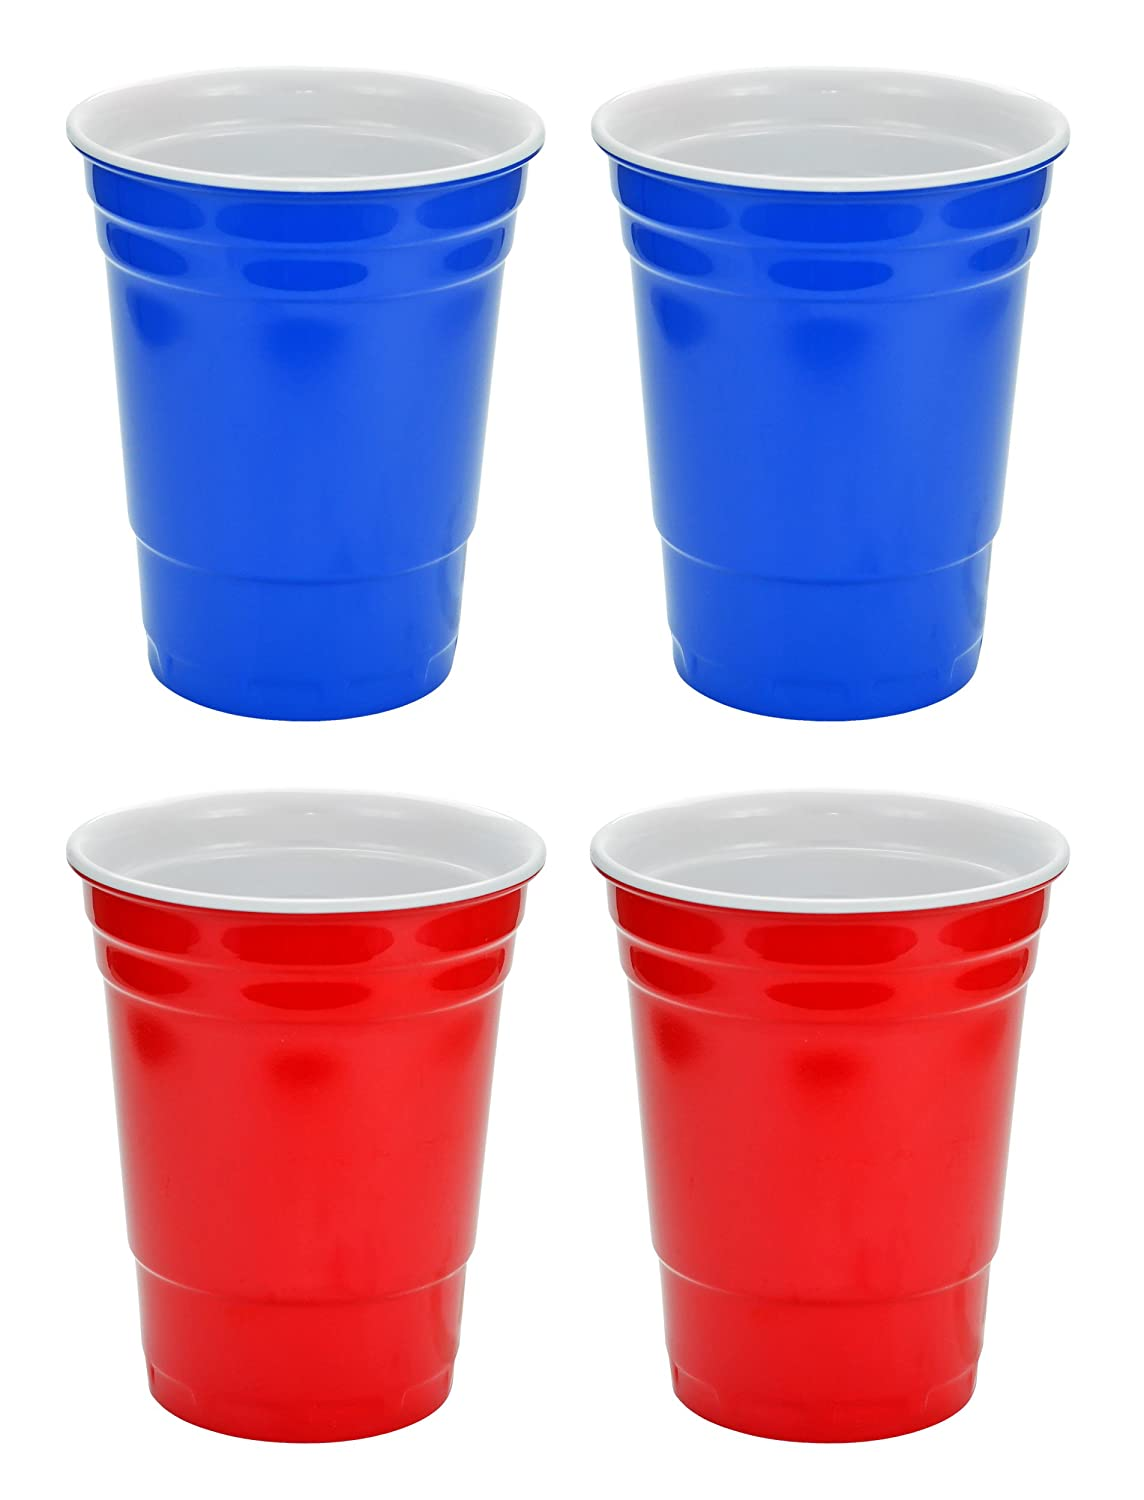 Fairly Odd Novelties 16oz Red and Blue Cup Made Out Of Melamine 4 Pack Living It Large Drink Solo or With A